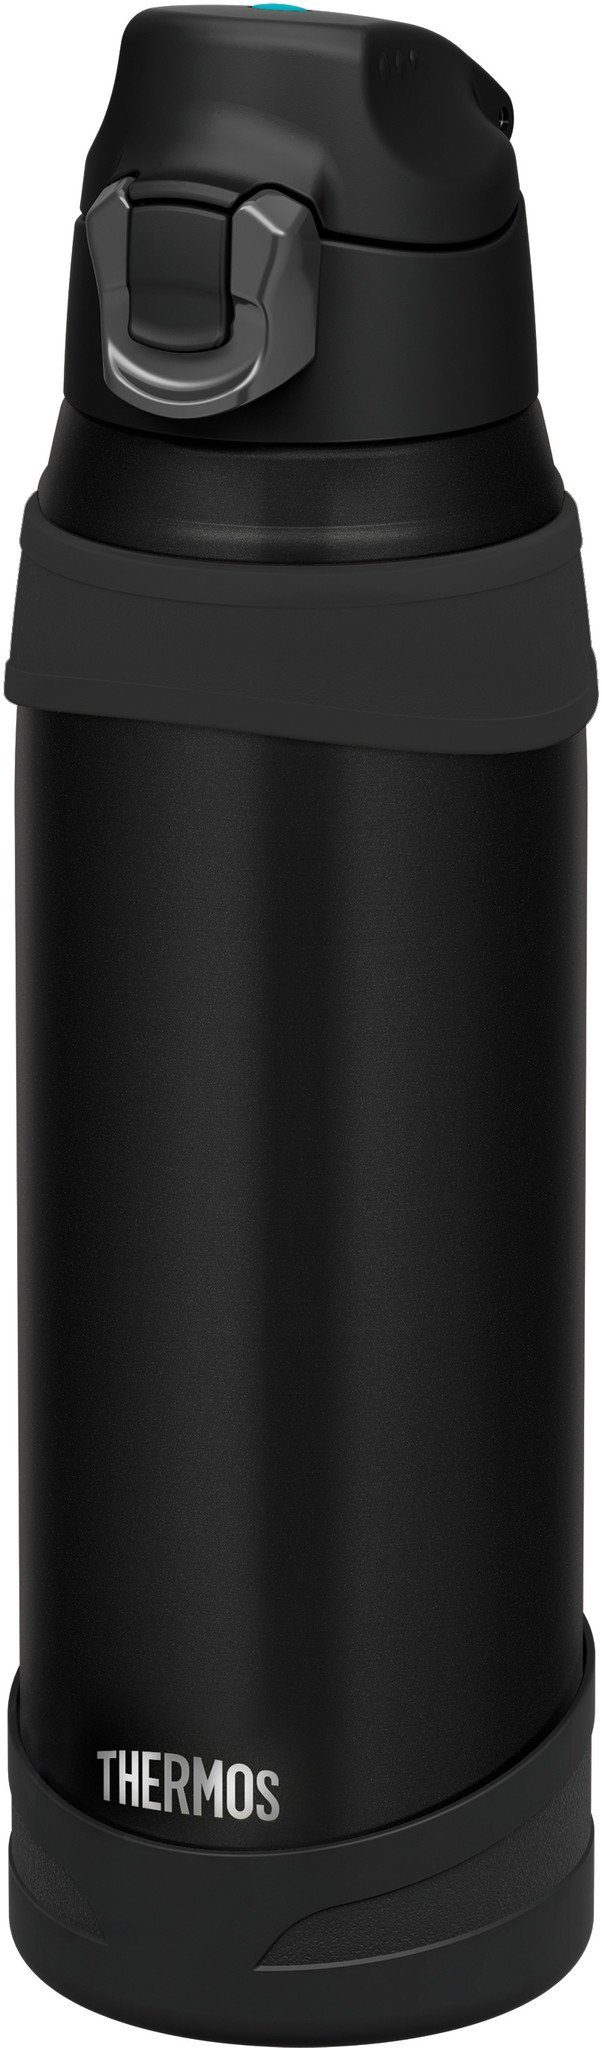 THERMOS Trinkflasche »Ultralight DL Isoflasche 1,0l«